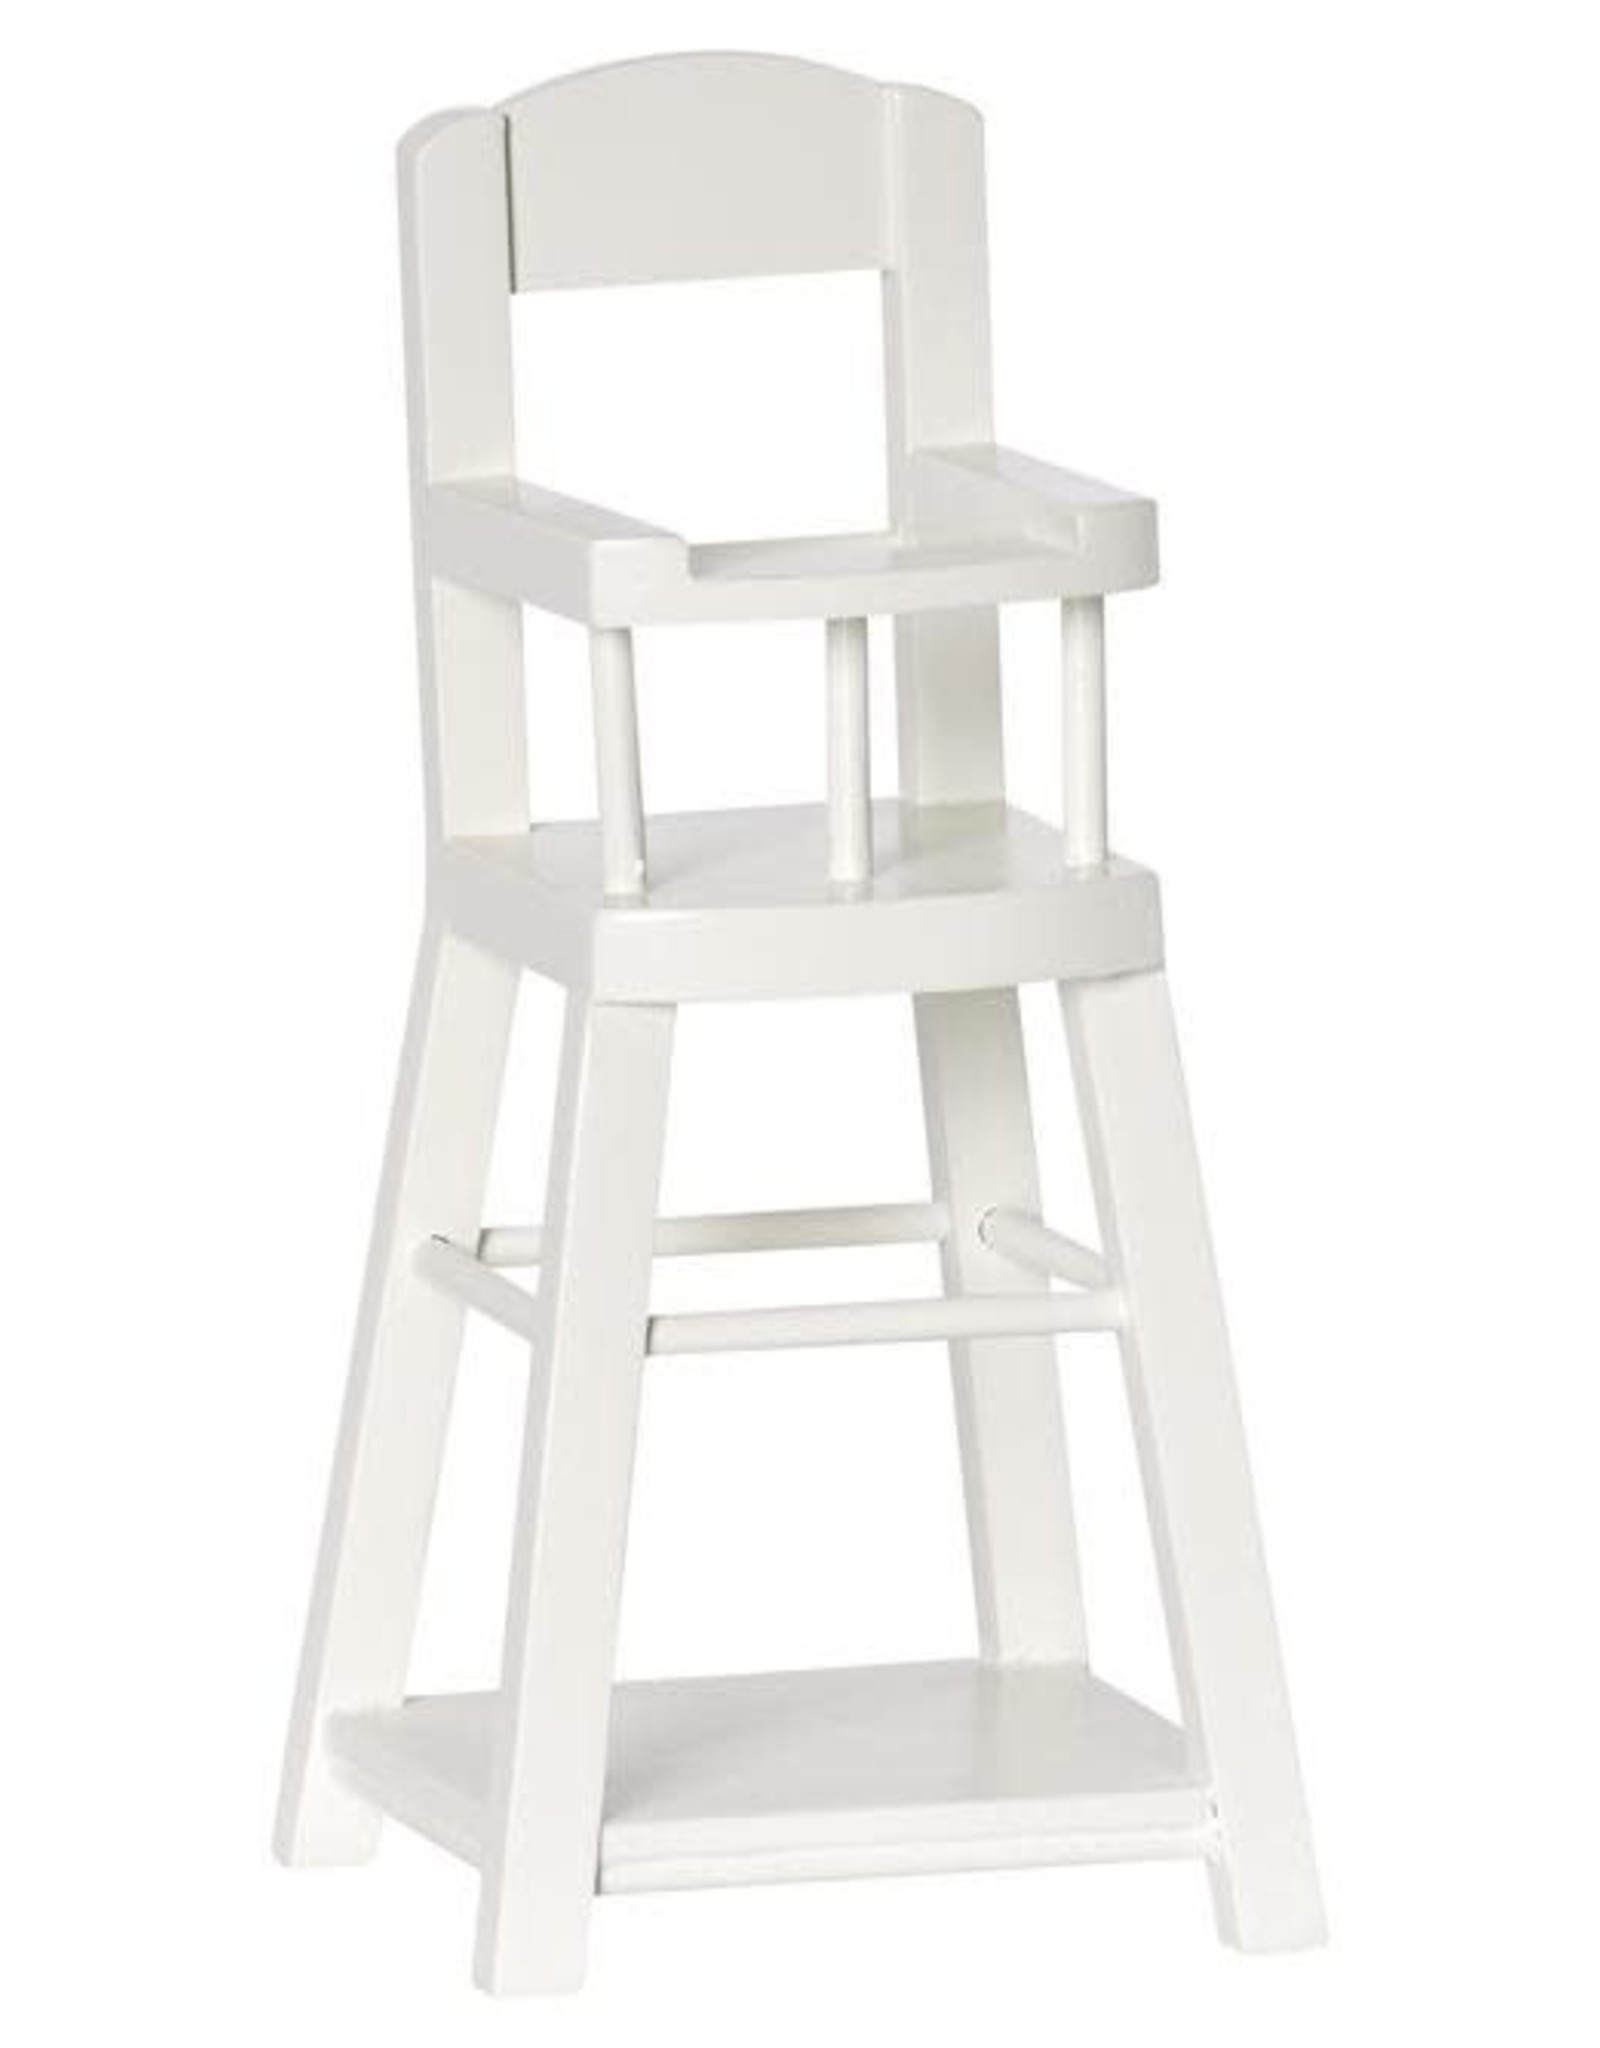 Maileg Micro Highchair, cream